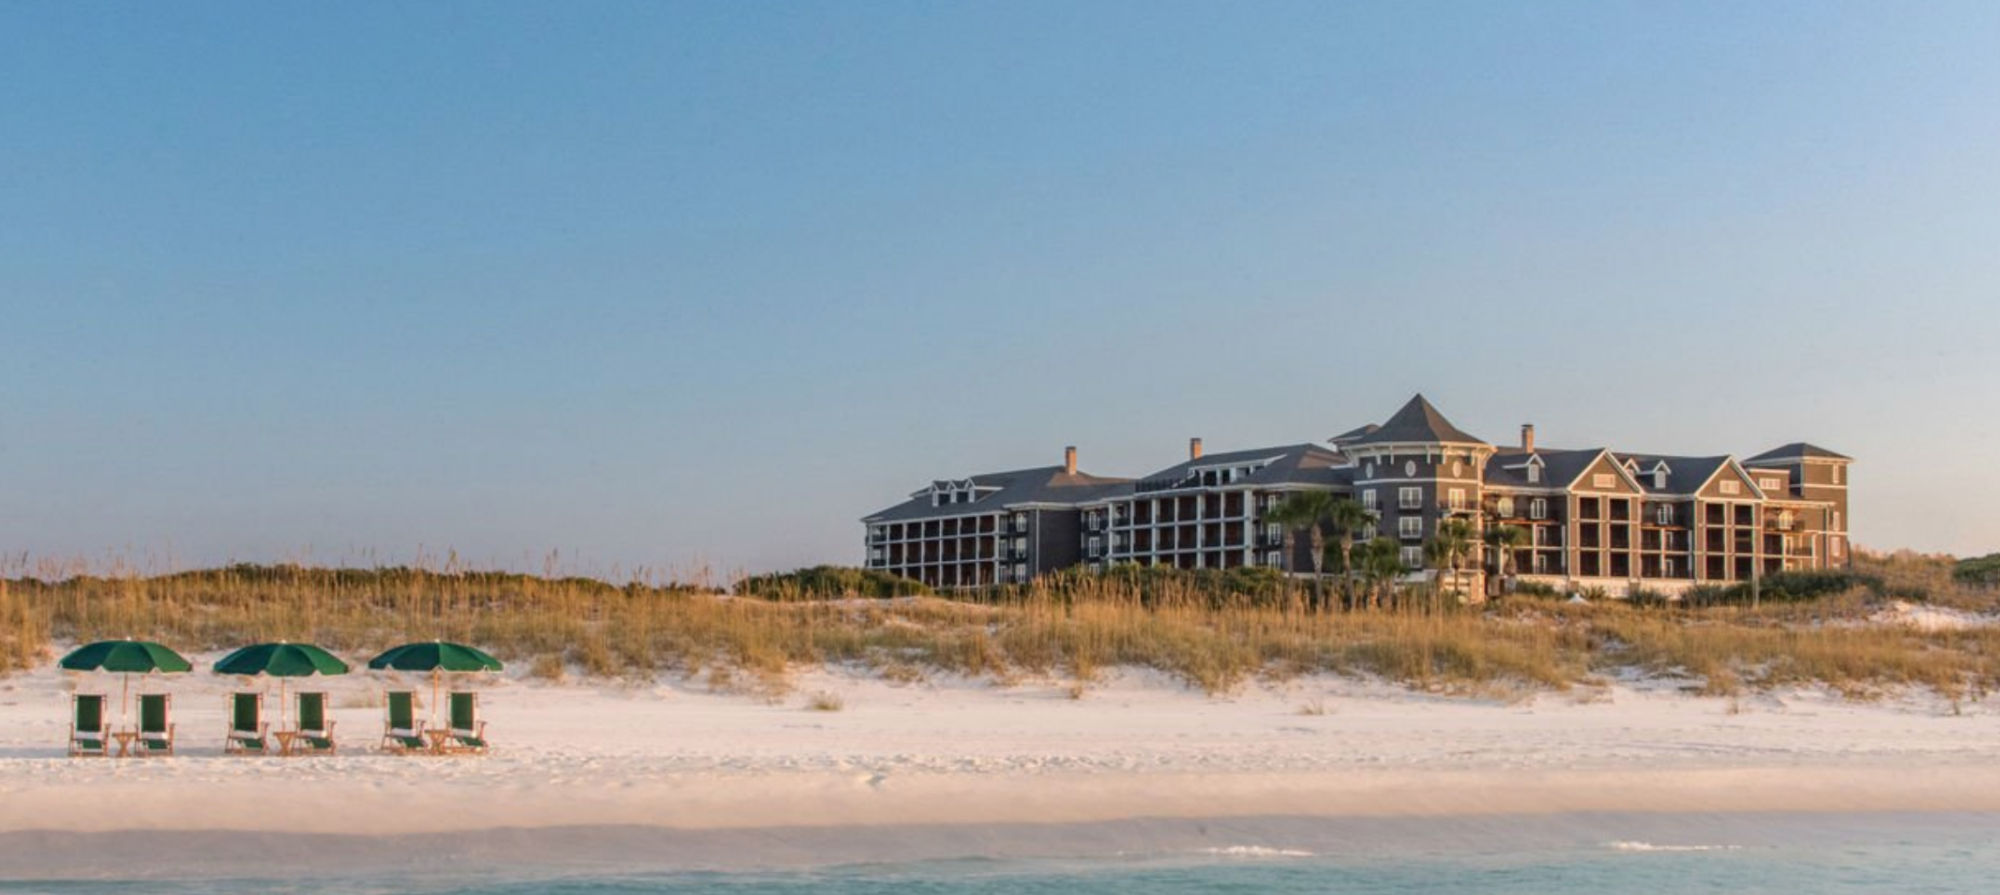 RX_1903__The Henderson, A Salamander Beach & Spa Resort (Destin, Florida)_ The South's Best 2019